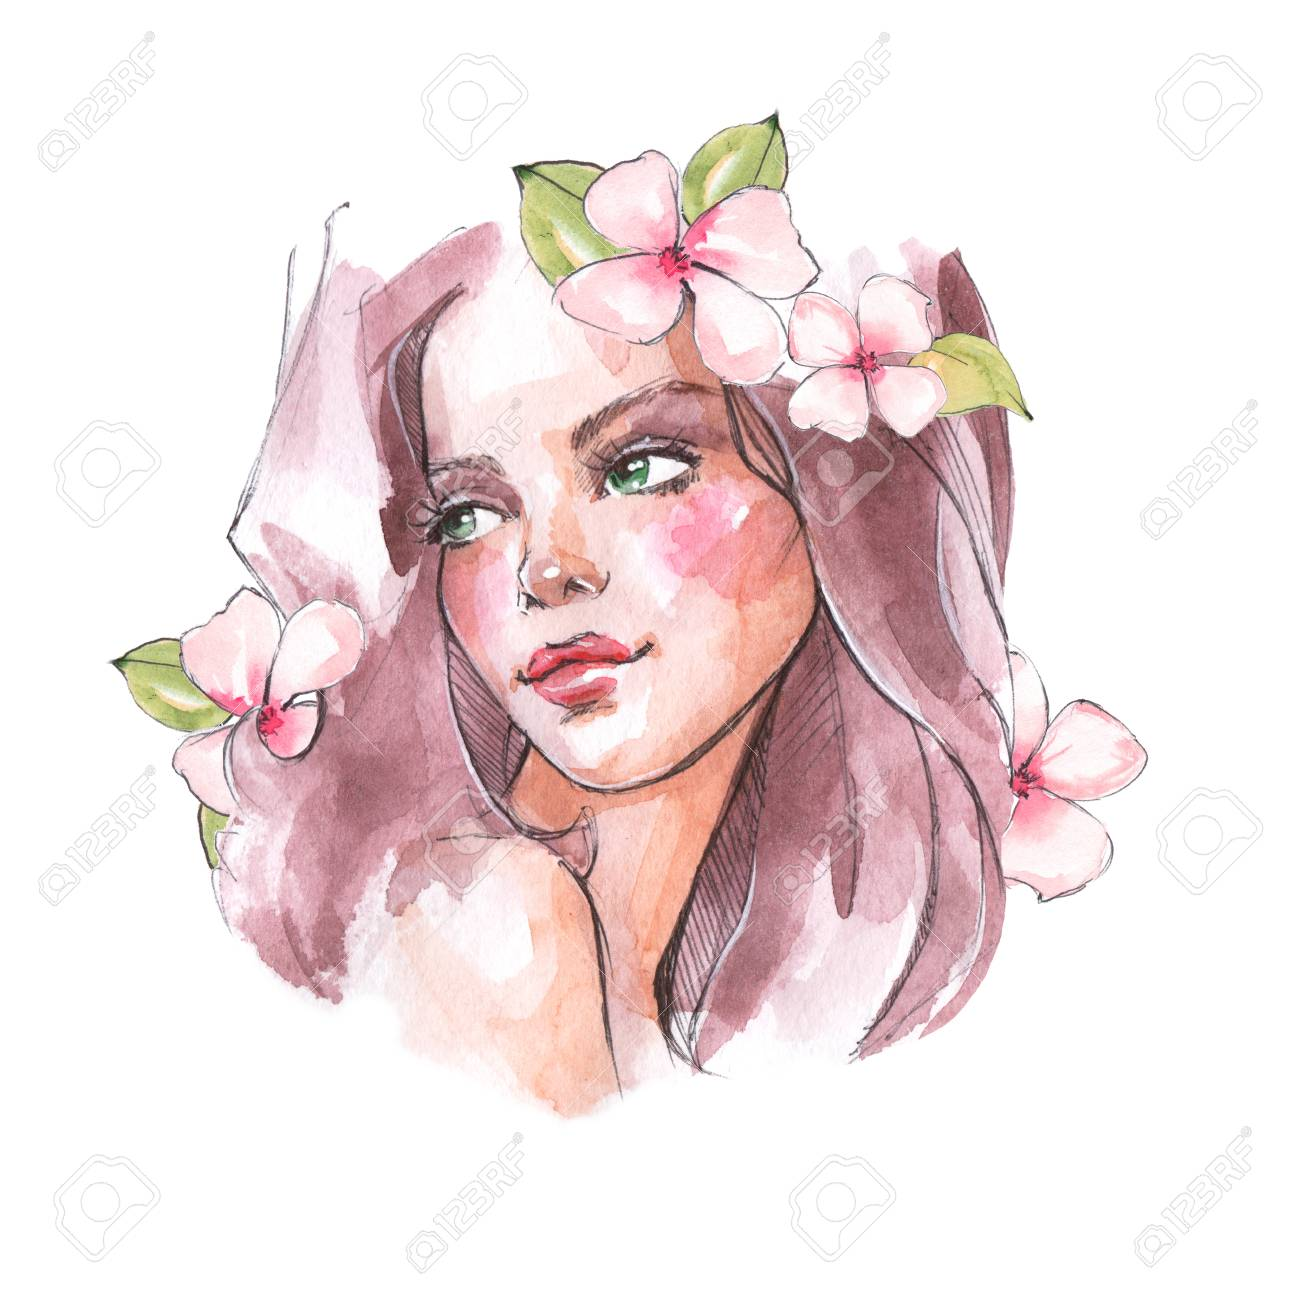 Beautiful Girl With Long Hair And Flowers Watercolor Sketch Stock Photo Picture And Royalty Free Image Image 101221859